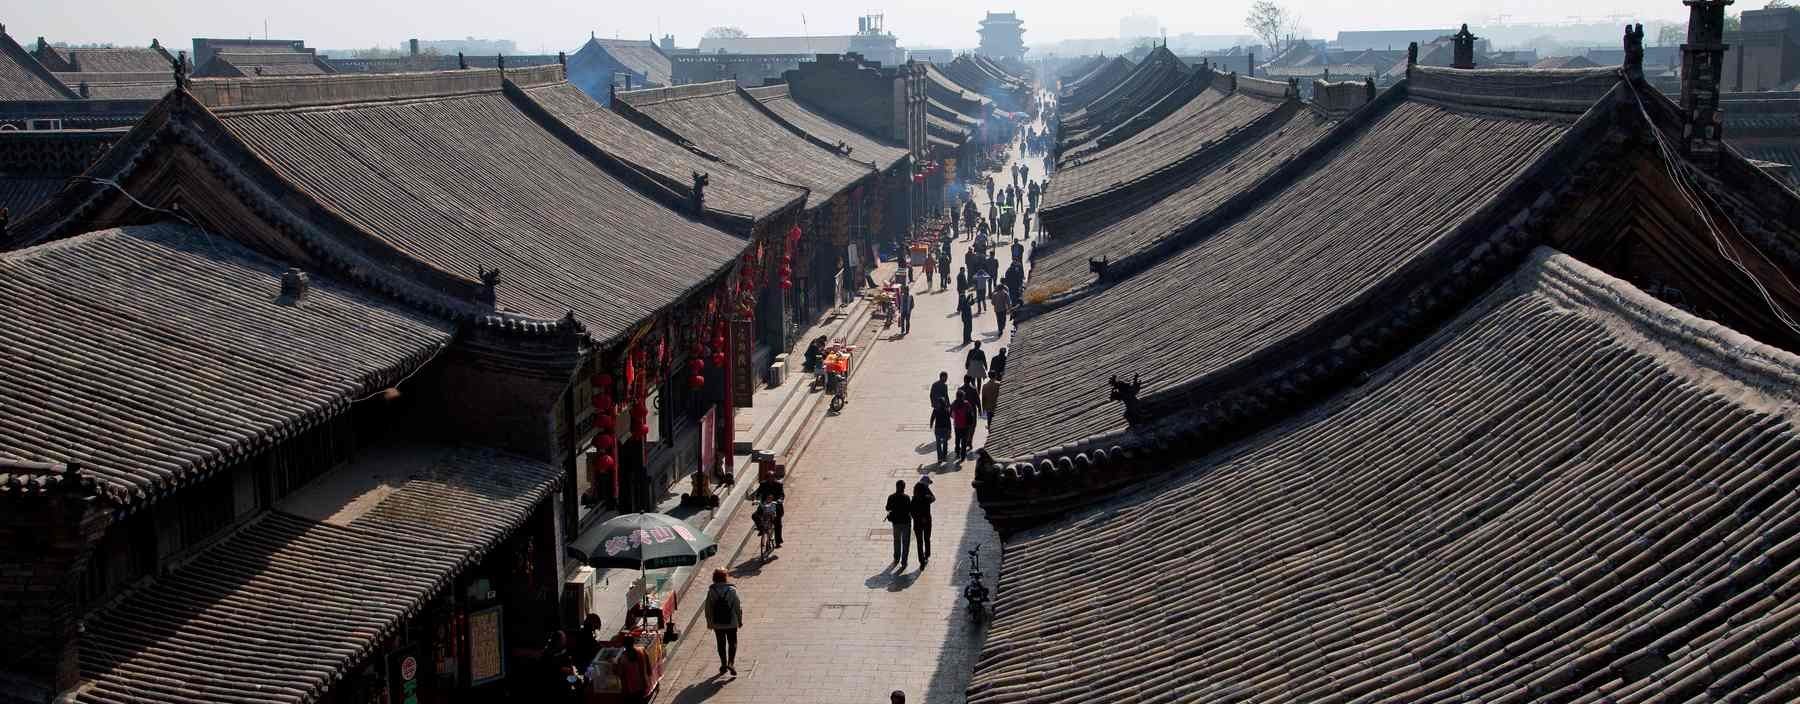 cn, pingyao, oude stad (1).jpg